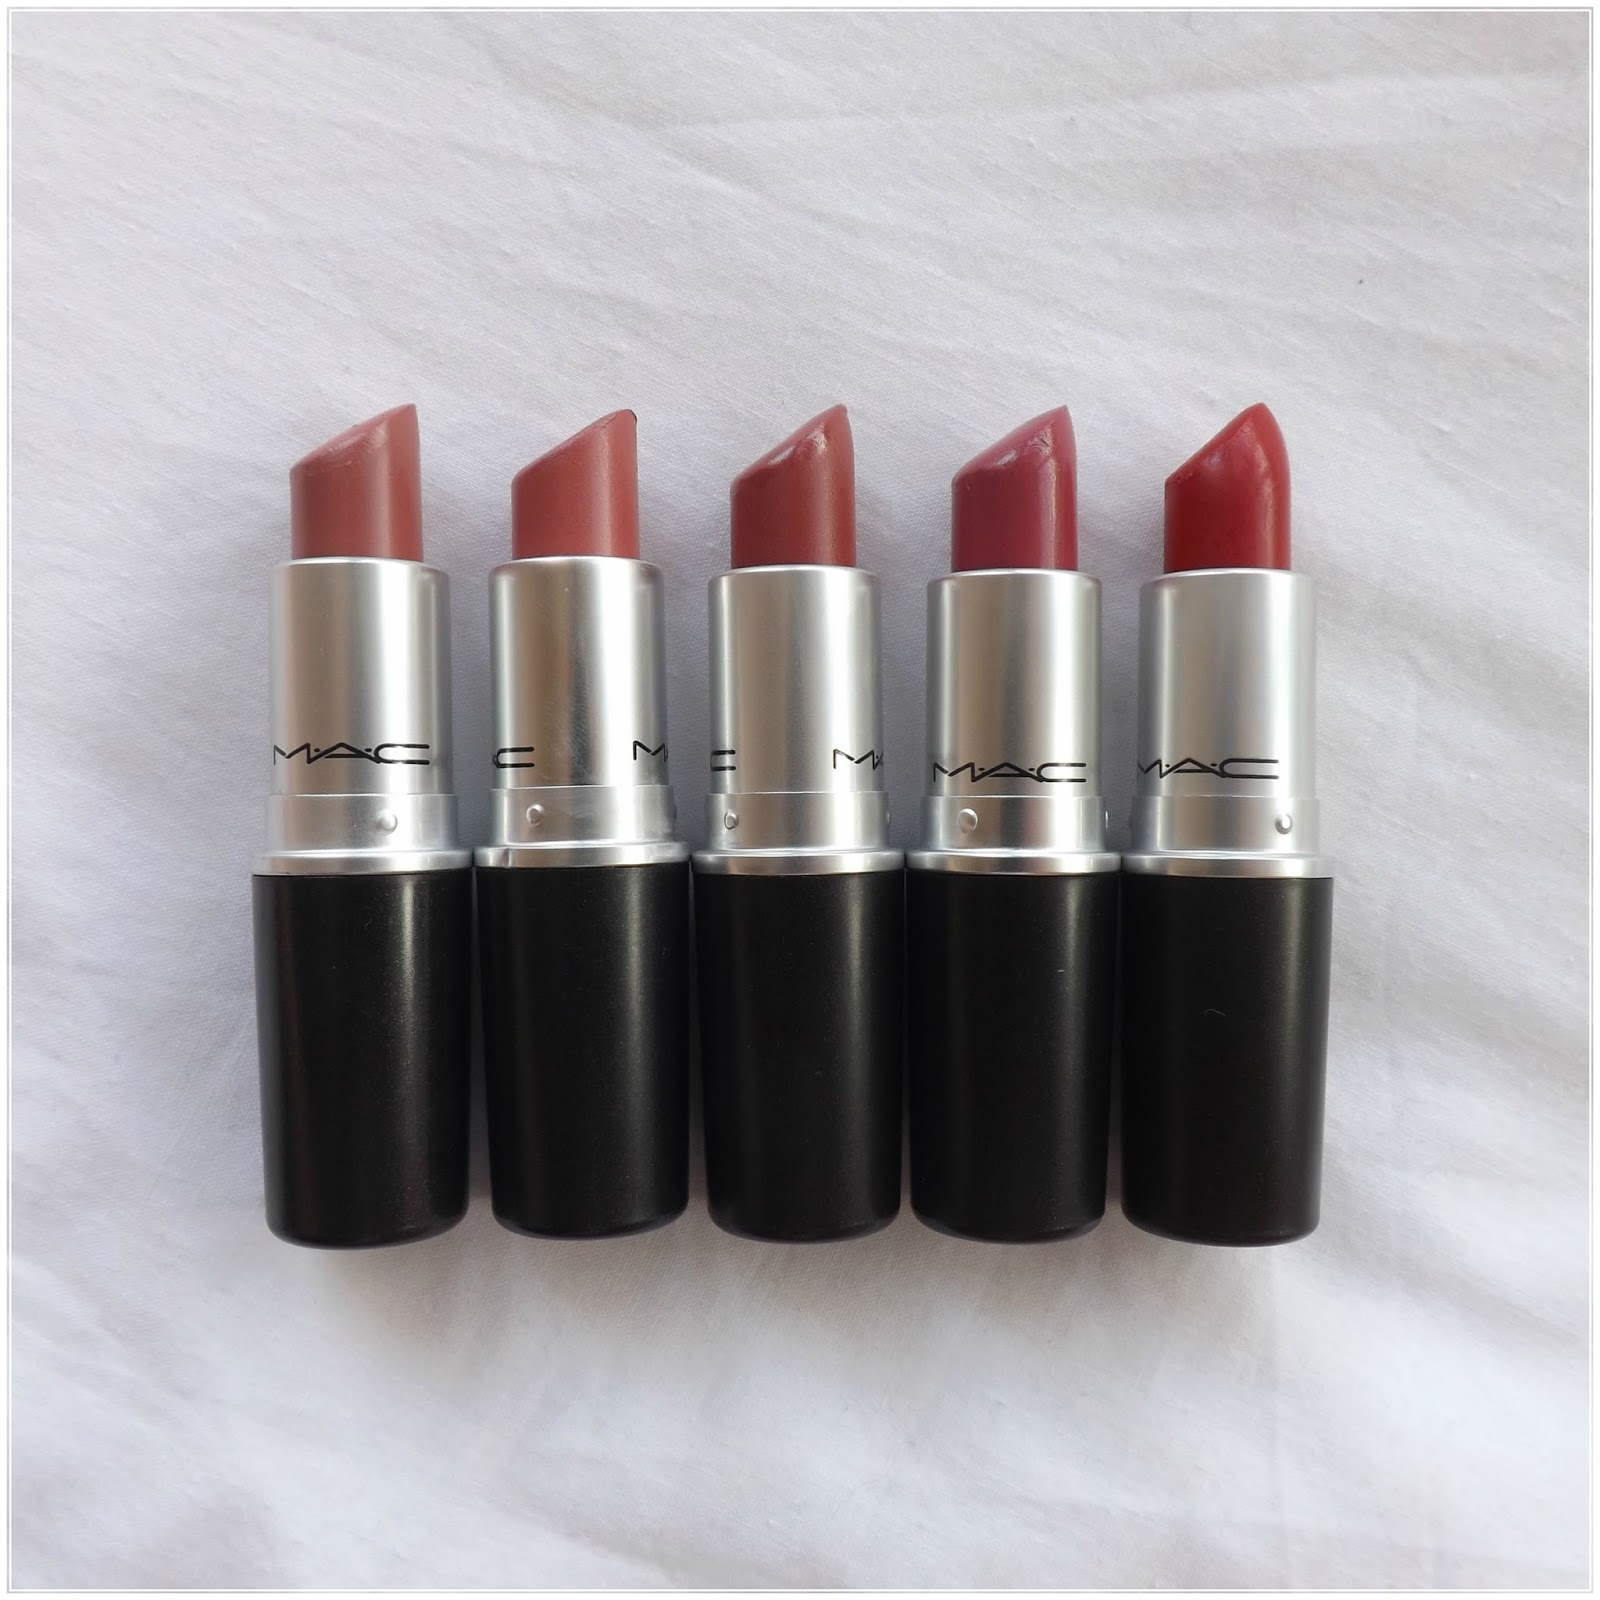 my mac lipstick collection and swatches taken by surprise